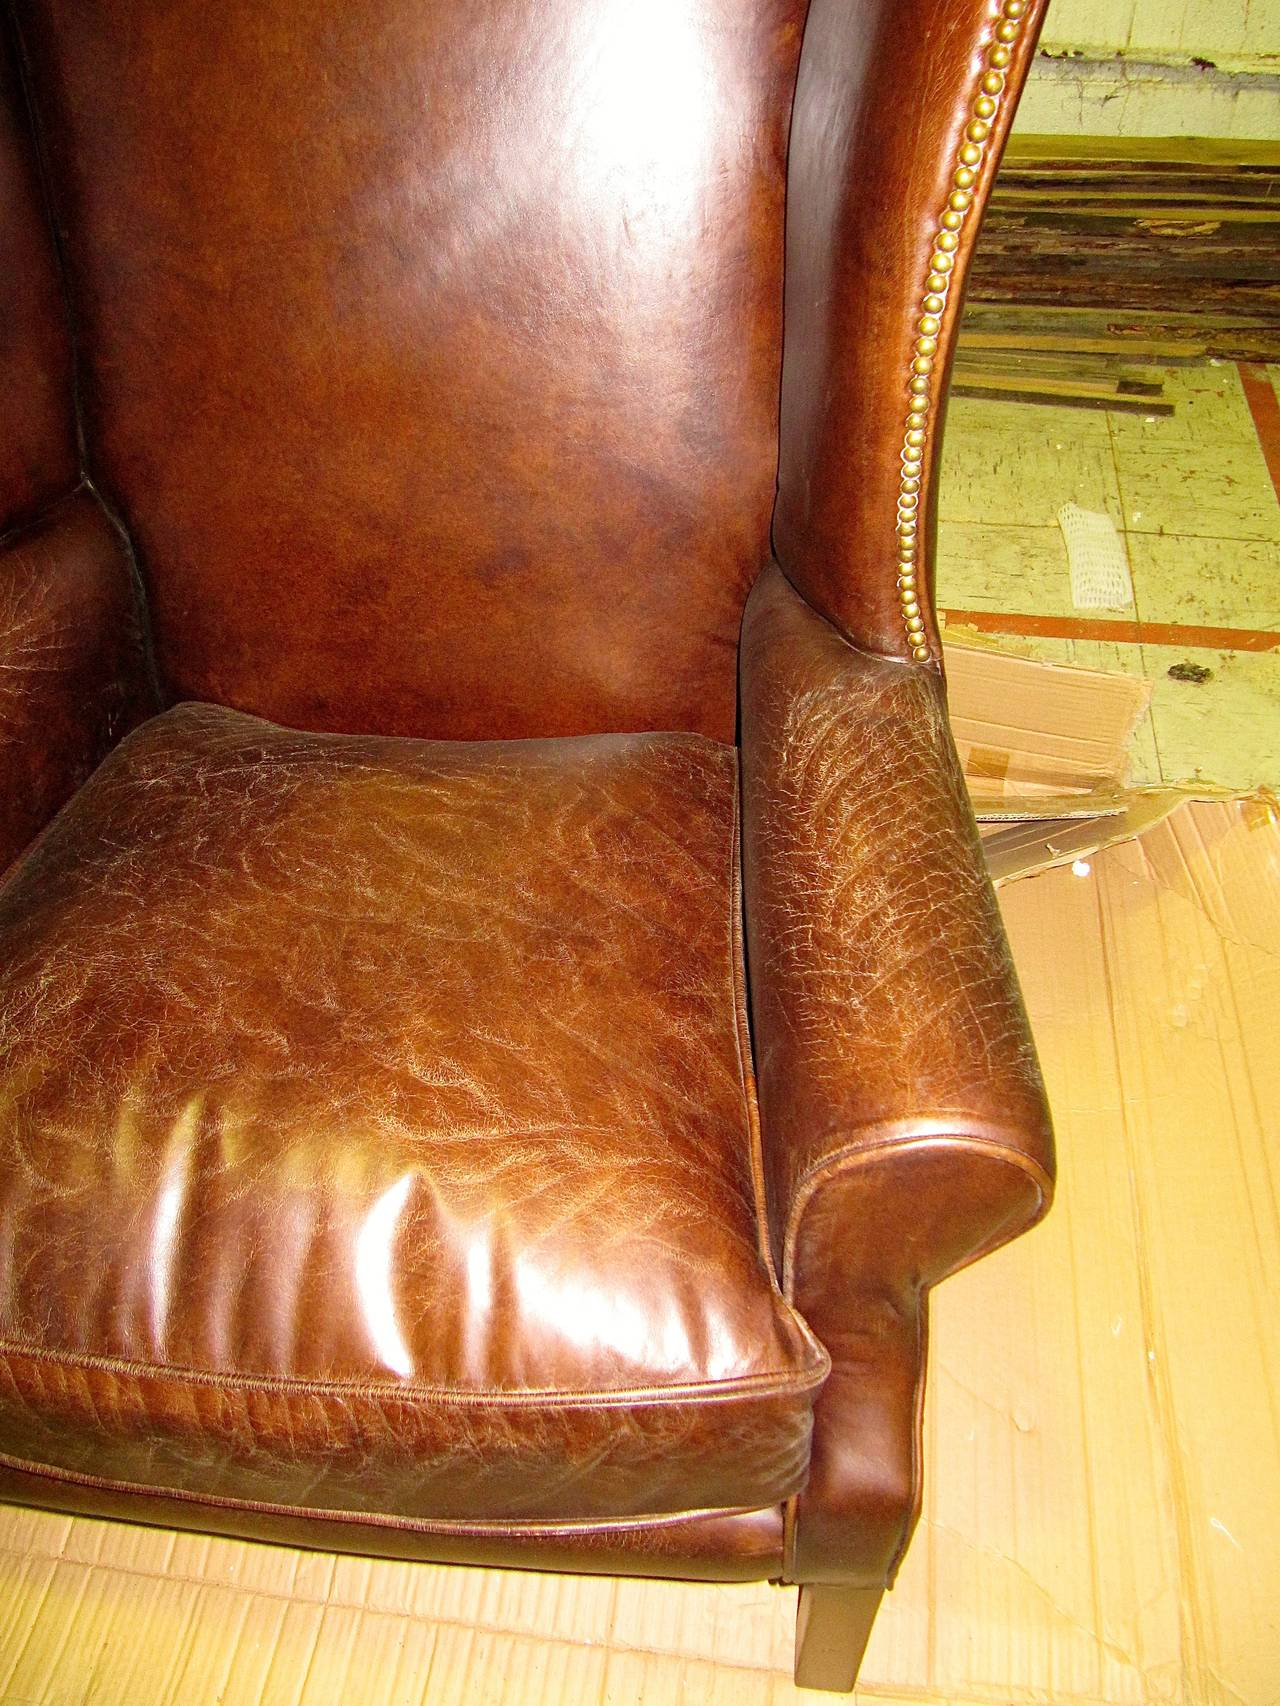 Two George III Style Wingback Chairs with Distressed Leather In Excellent Condition For Sale In Buchanan, MI